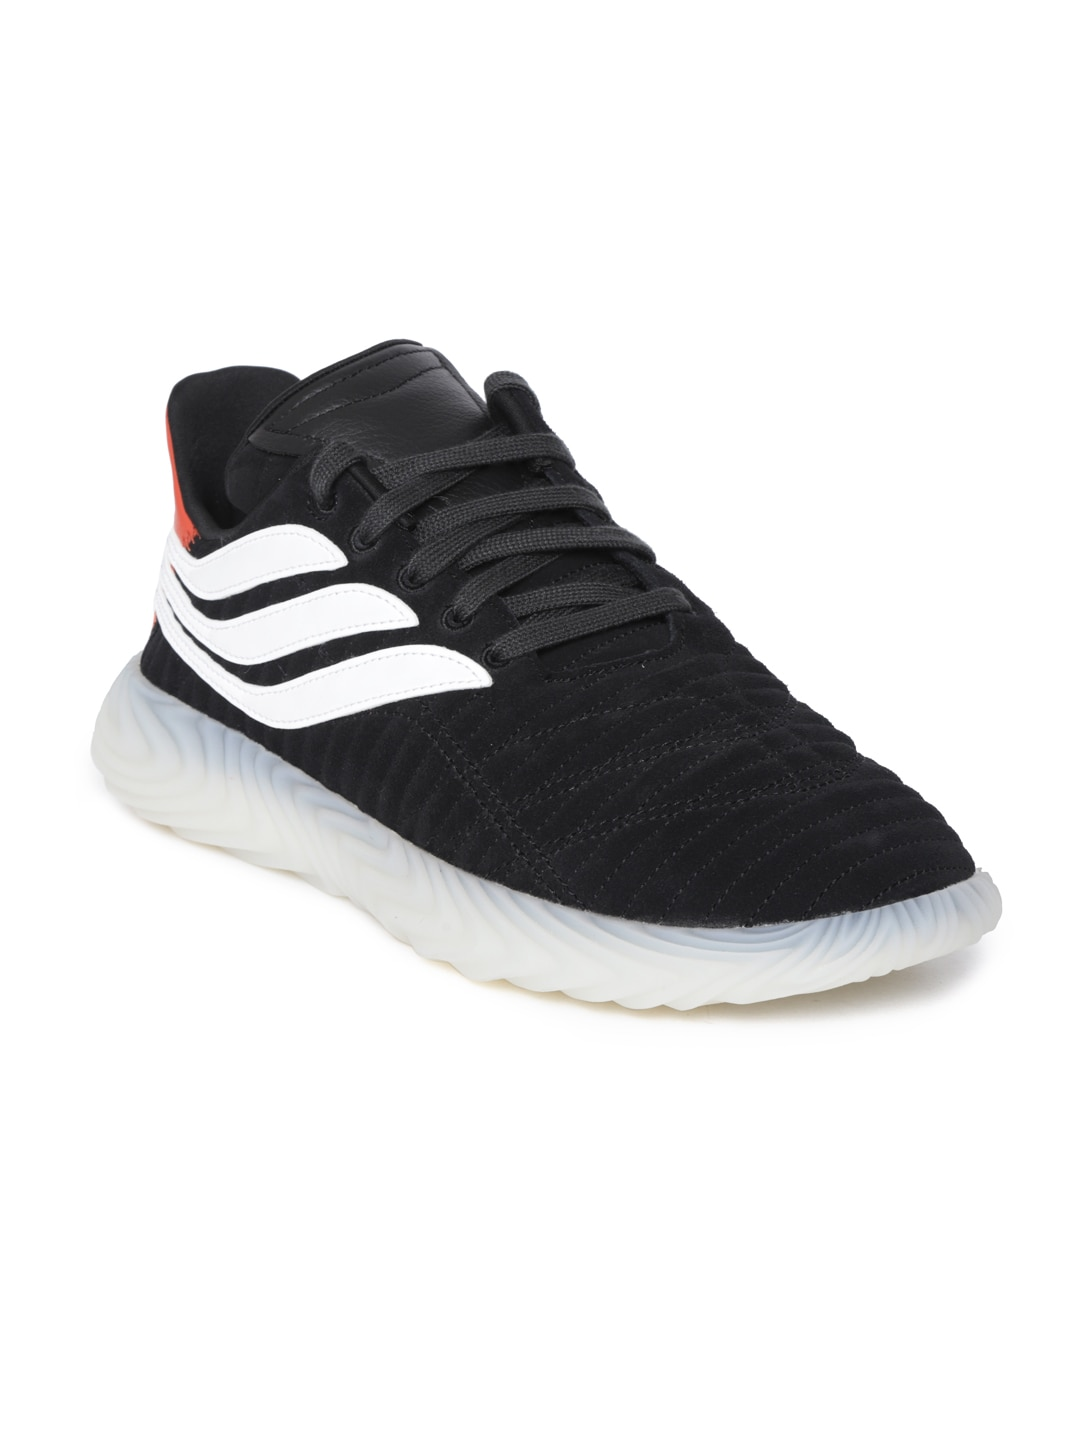 1fdd1603b Adidas Shoes - Buy Adidas Shoes for Men   Women Online - Myntra